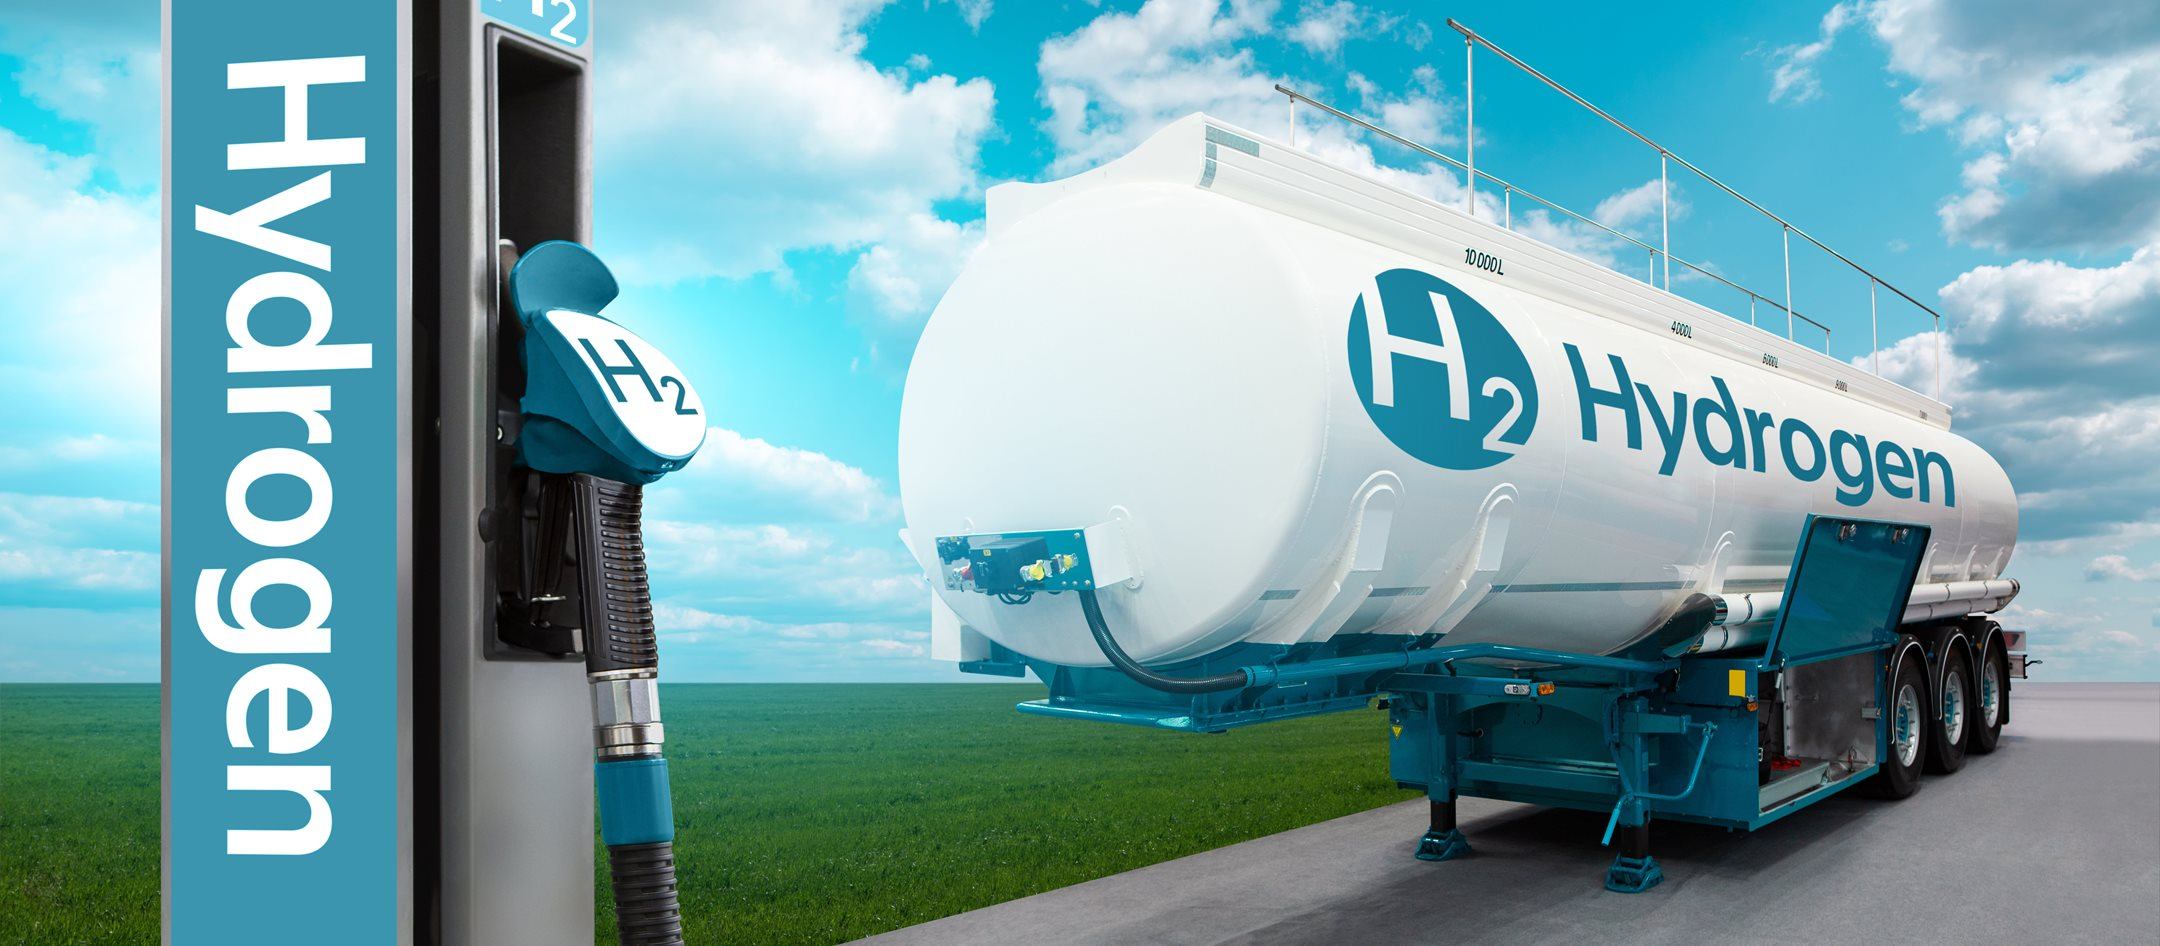 Hydrogen has an important role in the transition towards zero-emission transportation